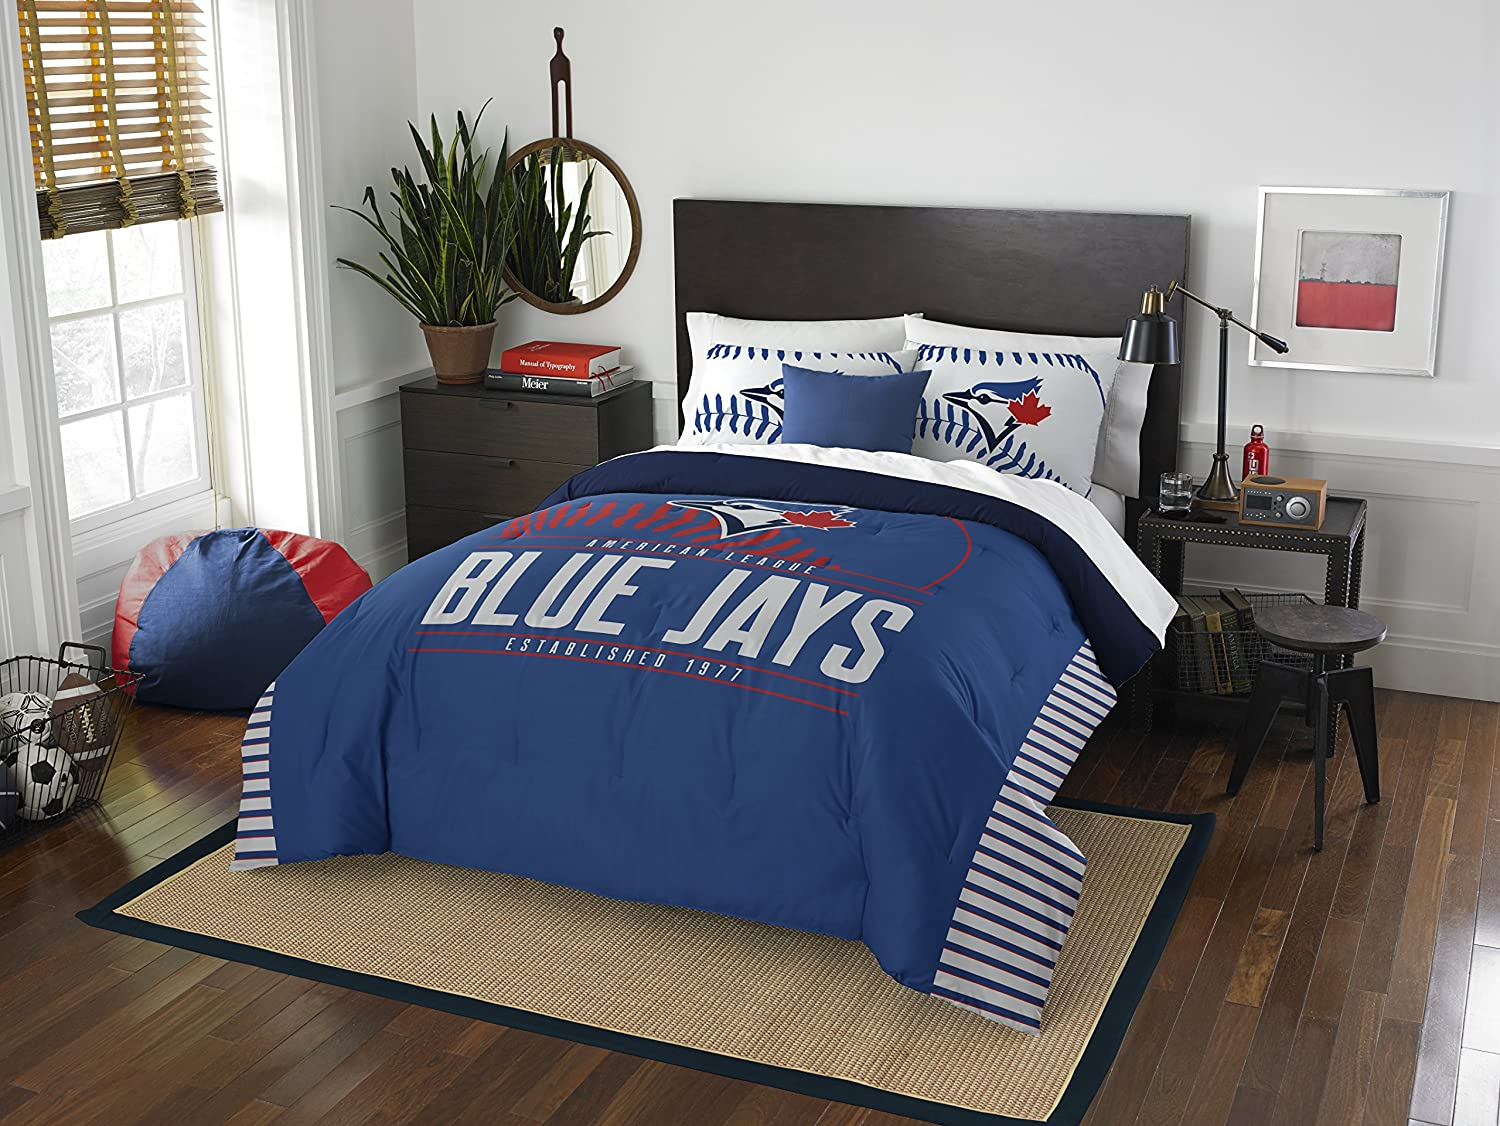 MLB Toronto Blue Jays Grand Slam Two Sham Set, Royal Blue, Full/Queen Size